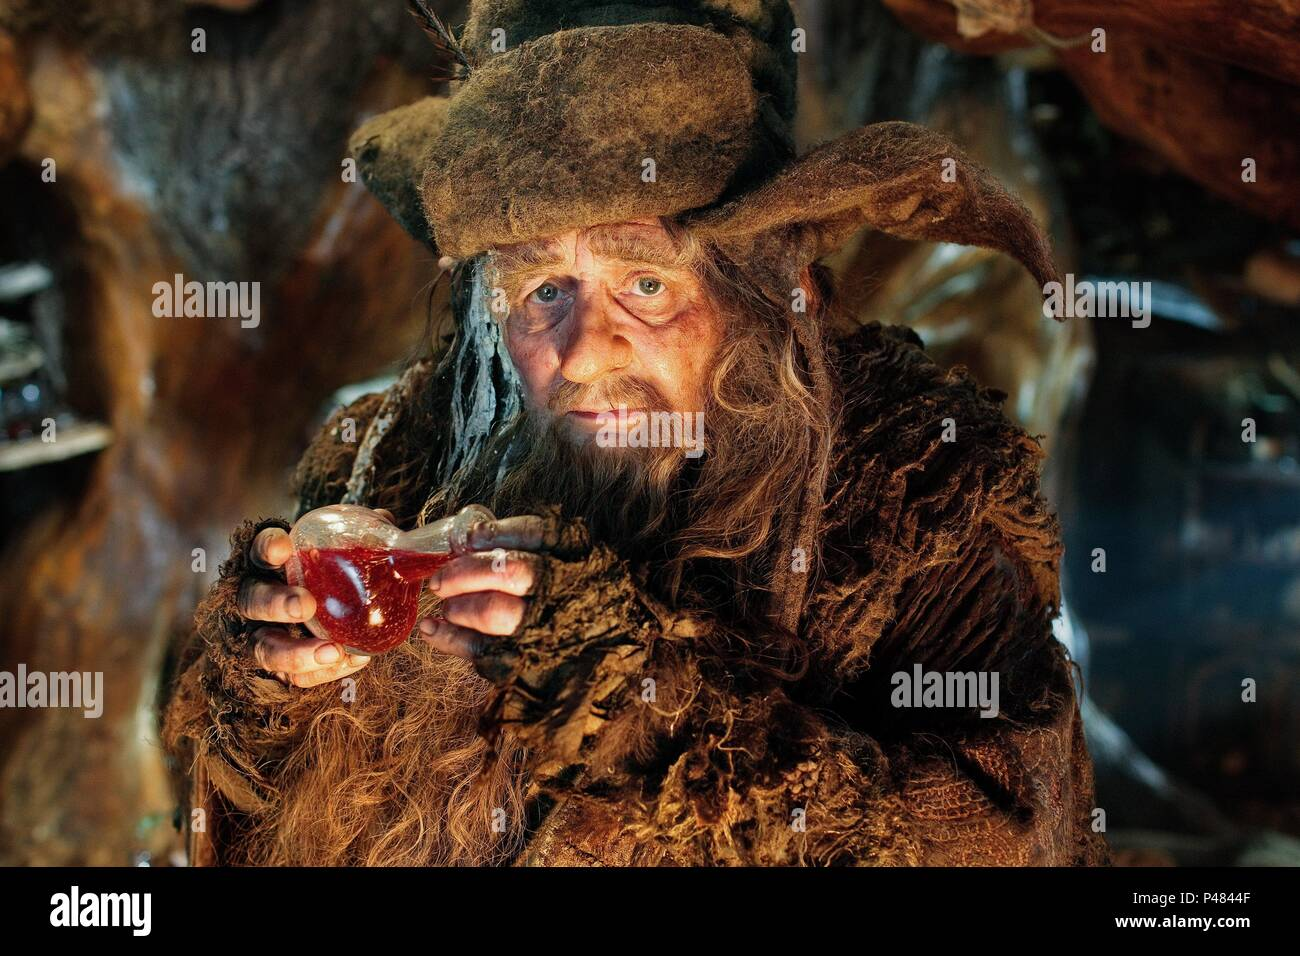 Original Film Title: HOBBIT, THE: AN UNEXPECTED JOURNEY.  English Title: HOBBIT, THE: AN UNEXPECTED JOURNEY.  Film Director: PETER JACKSON.  Year: 2012.  Stars: SYLVESTER MCCOY. Credit: METRO GOLDWYN MAYER / Album - Stock Image